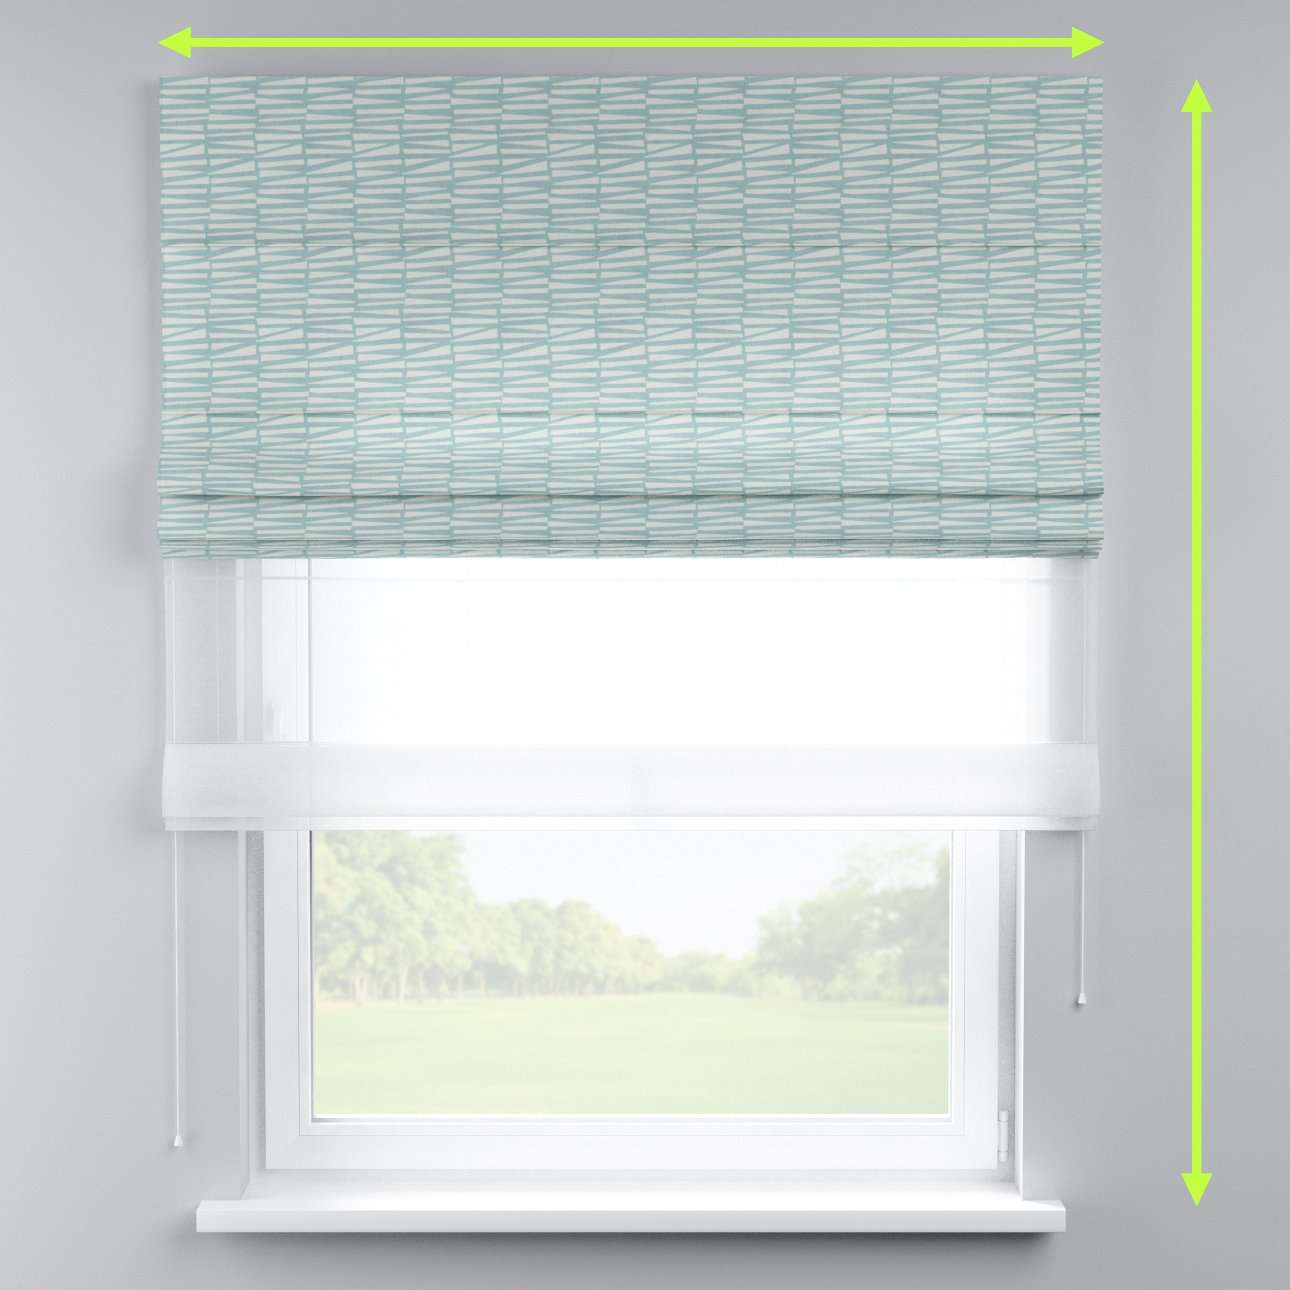 Voile and fabric roman blind (DUO II) in collection Norge, fabric: 140-83